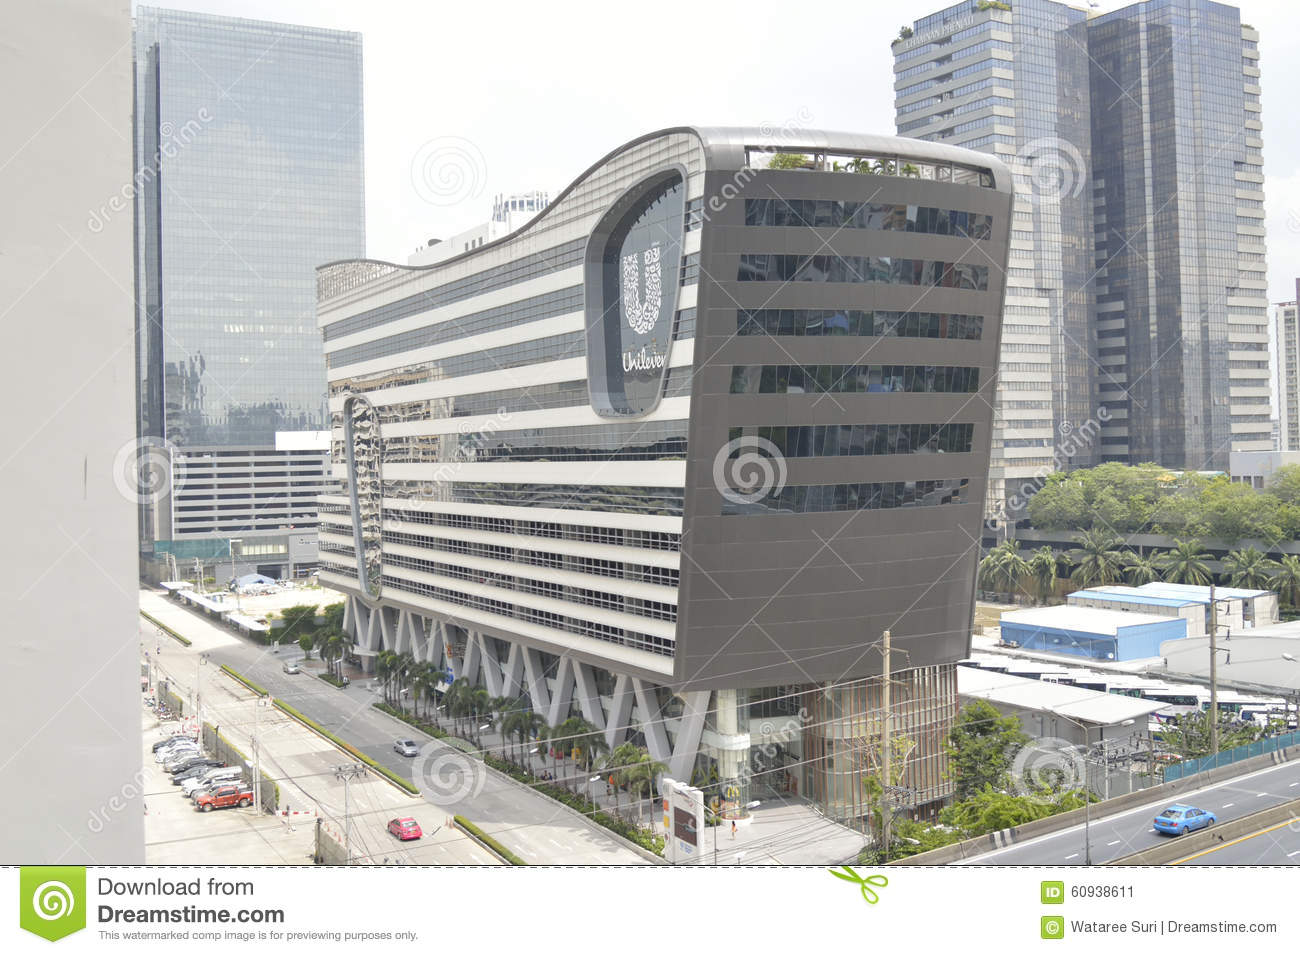 unilever office. Unilever Office In Thailand Editorial Photo - Image Of Thailand, Comfort: 60938611